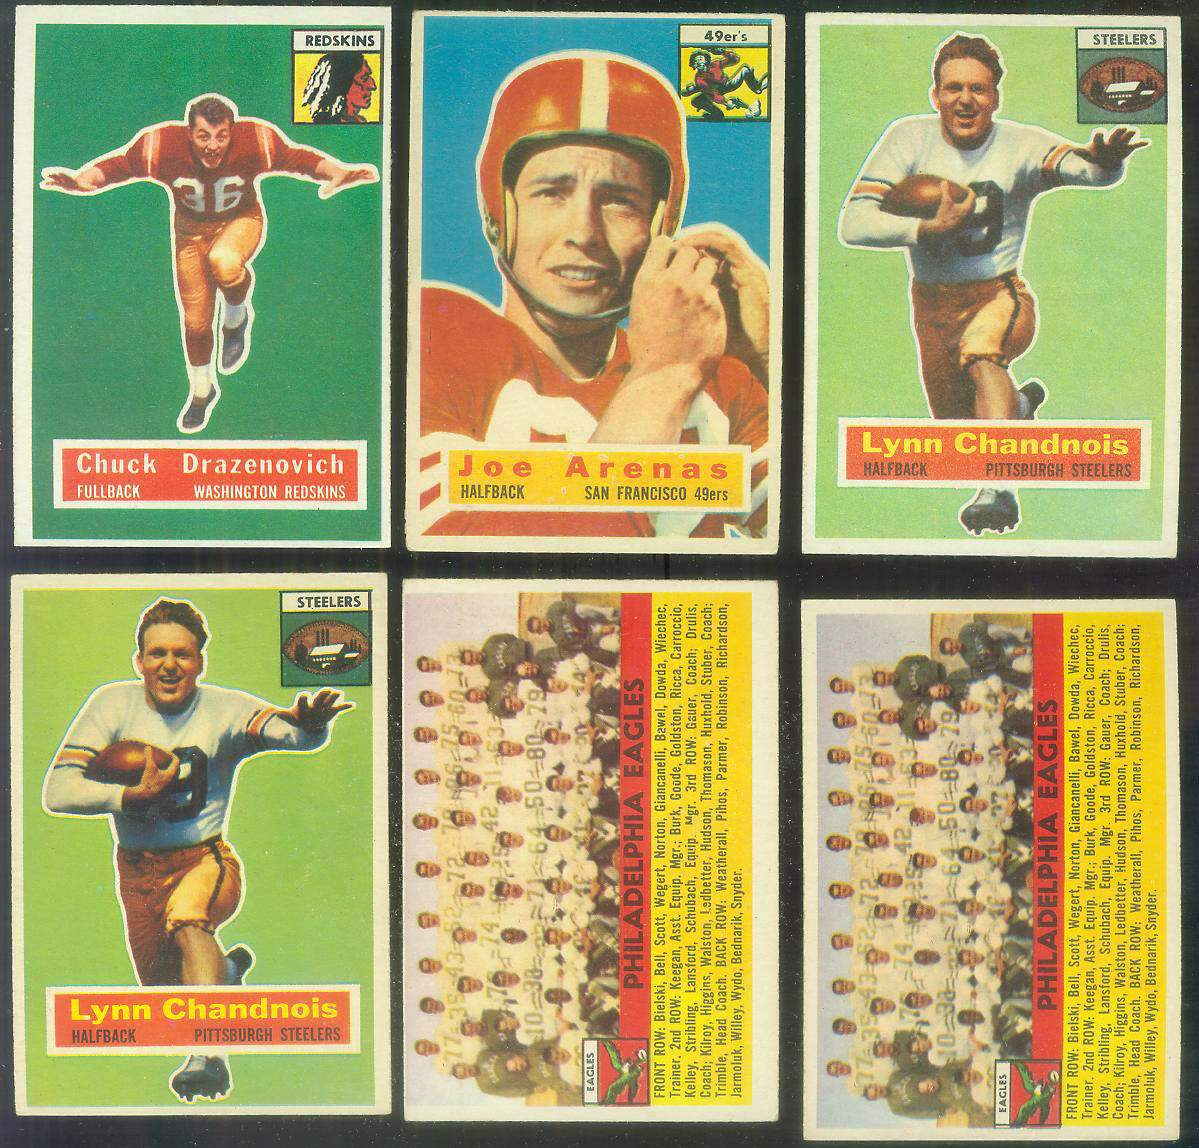 1956 Topps FB # 37 Chuck Drazenovich SHORT PRINT (Redskins) Football cards value